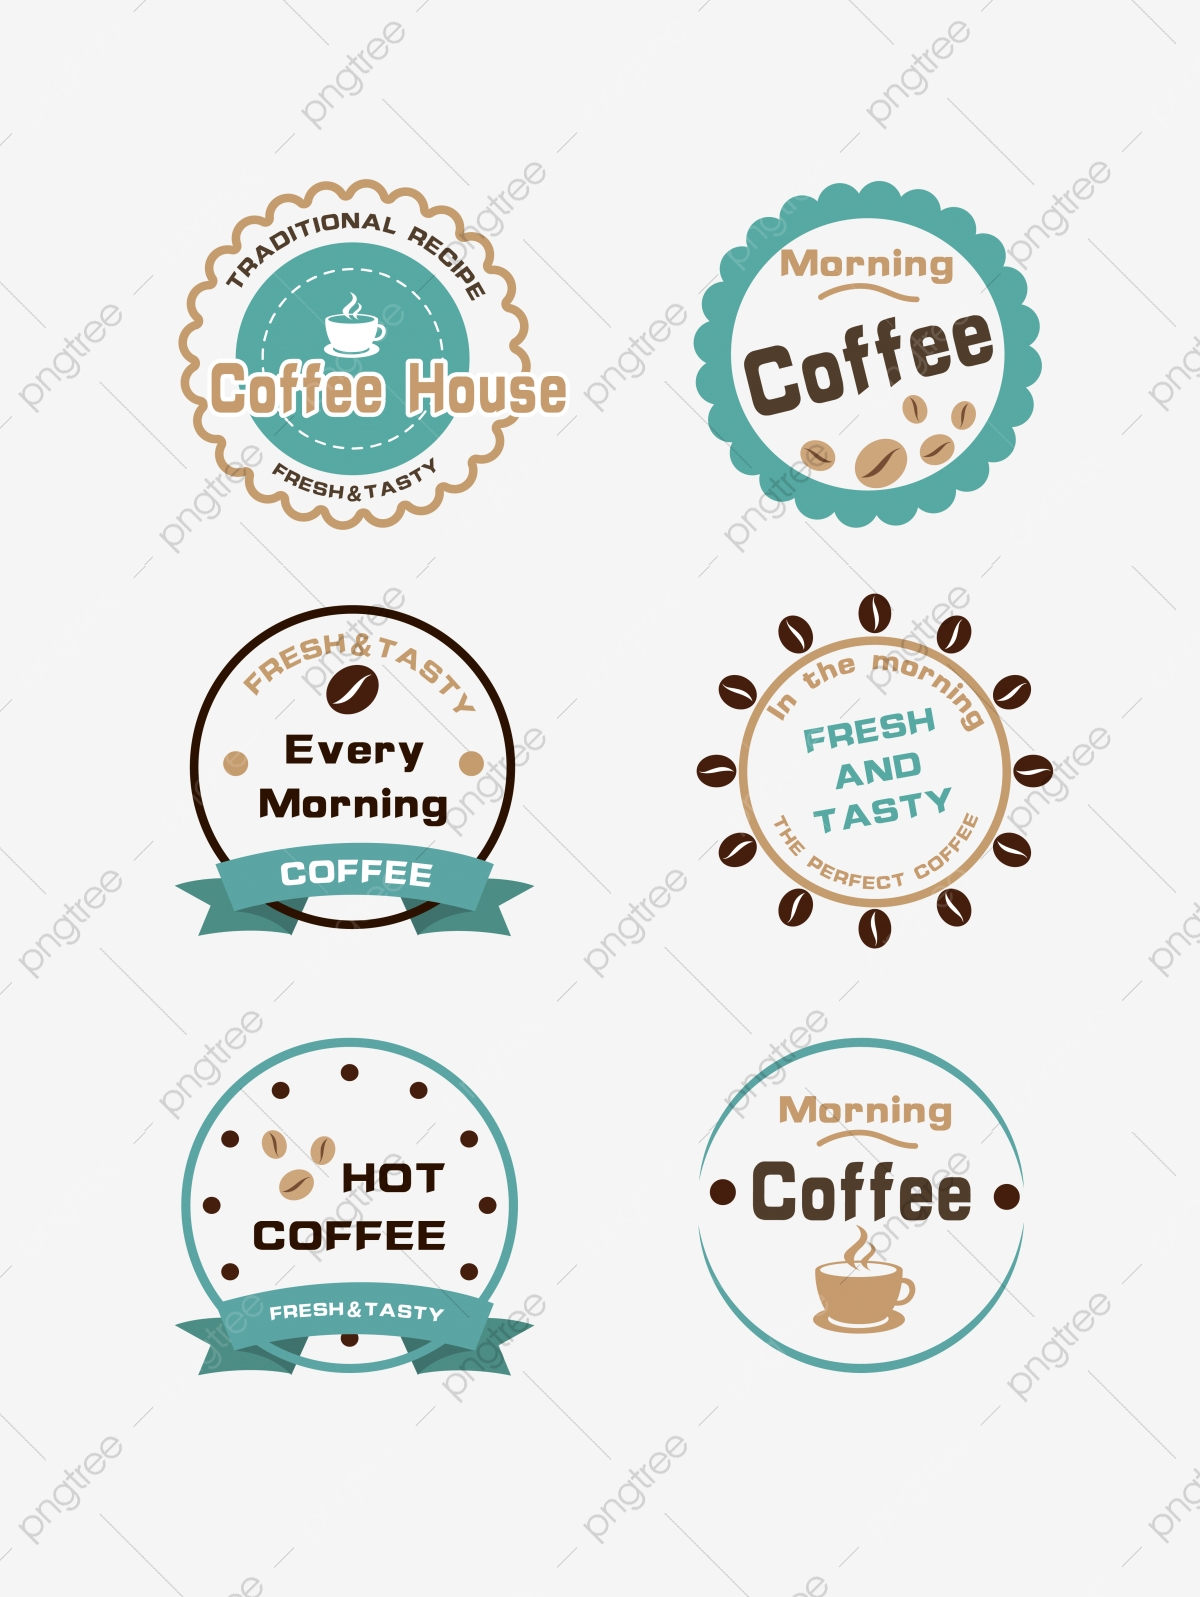 Exquisite Coffee Logo Design Material Creativity English Round Png And Vector With Transparent Background For Free Download